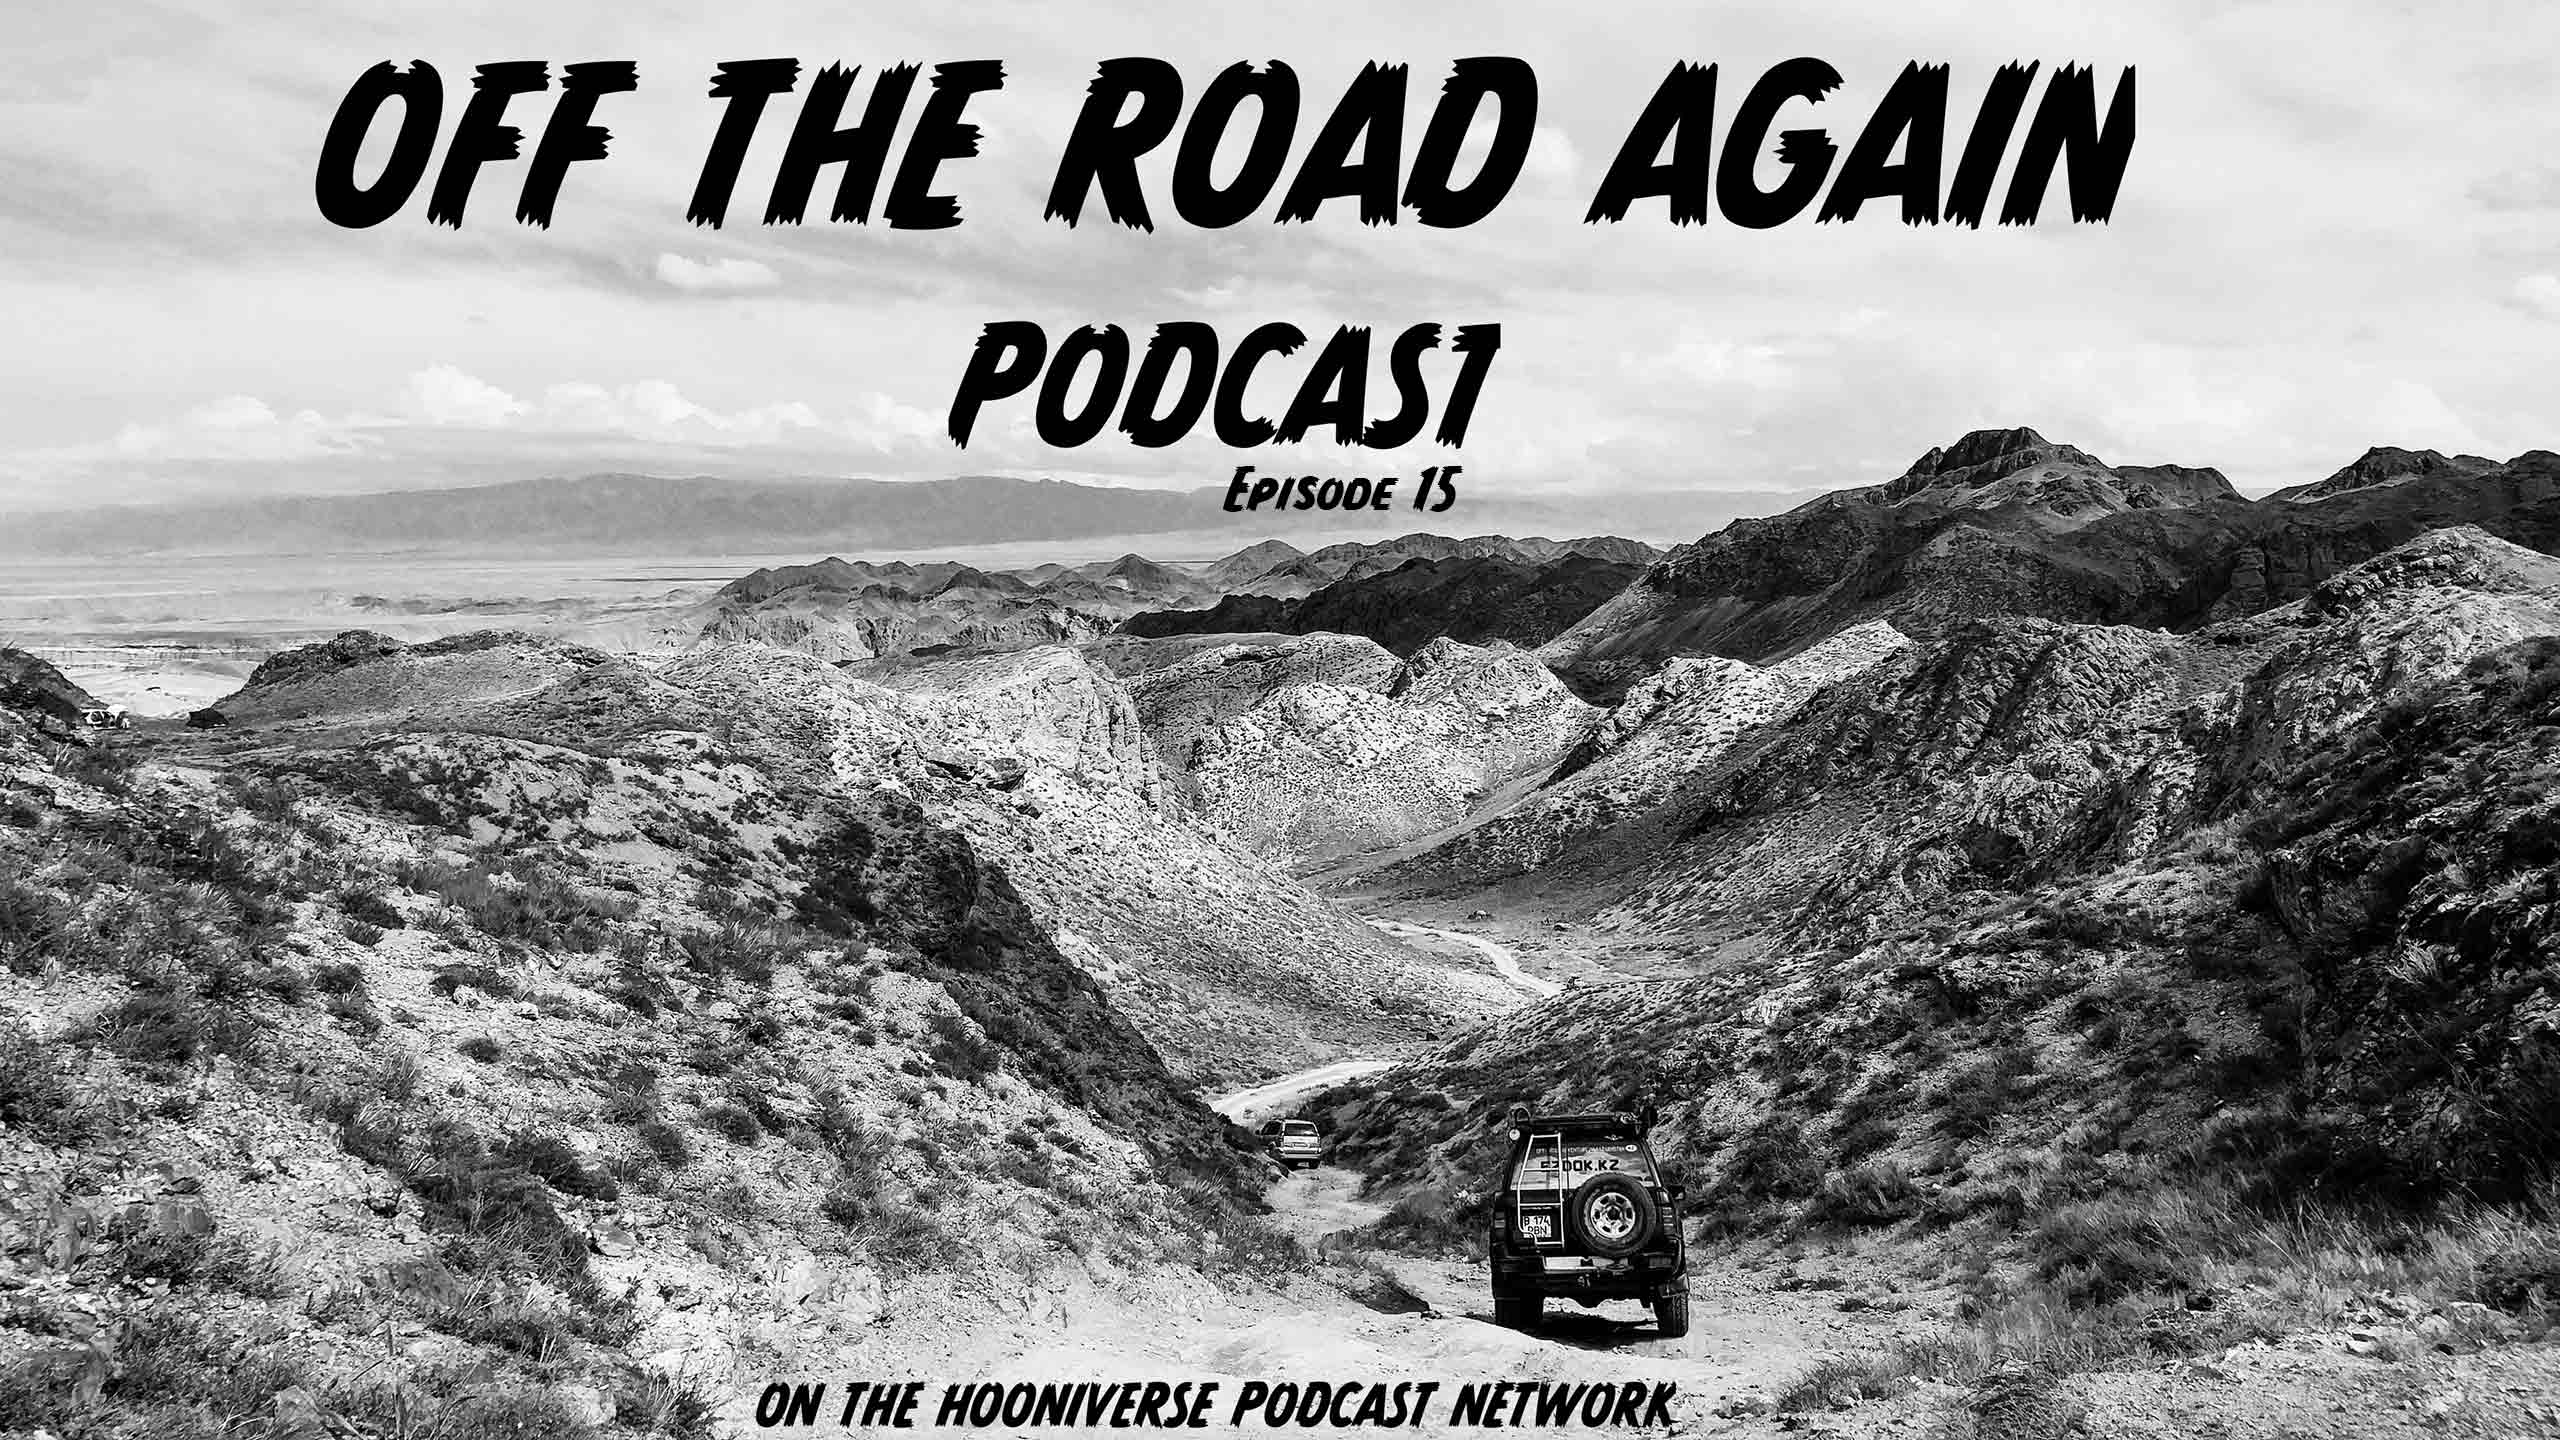 Off The Road Again Podcast -Episode 15